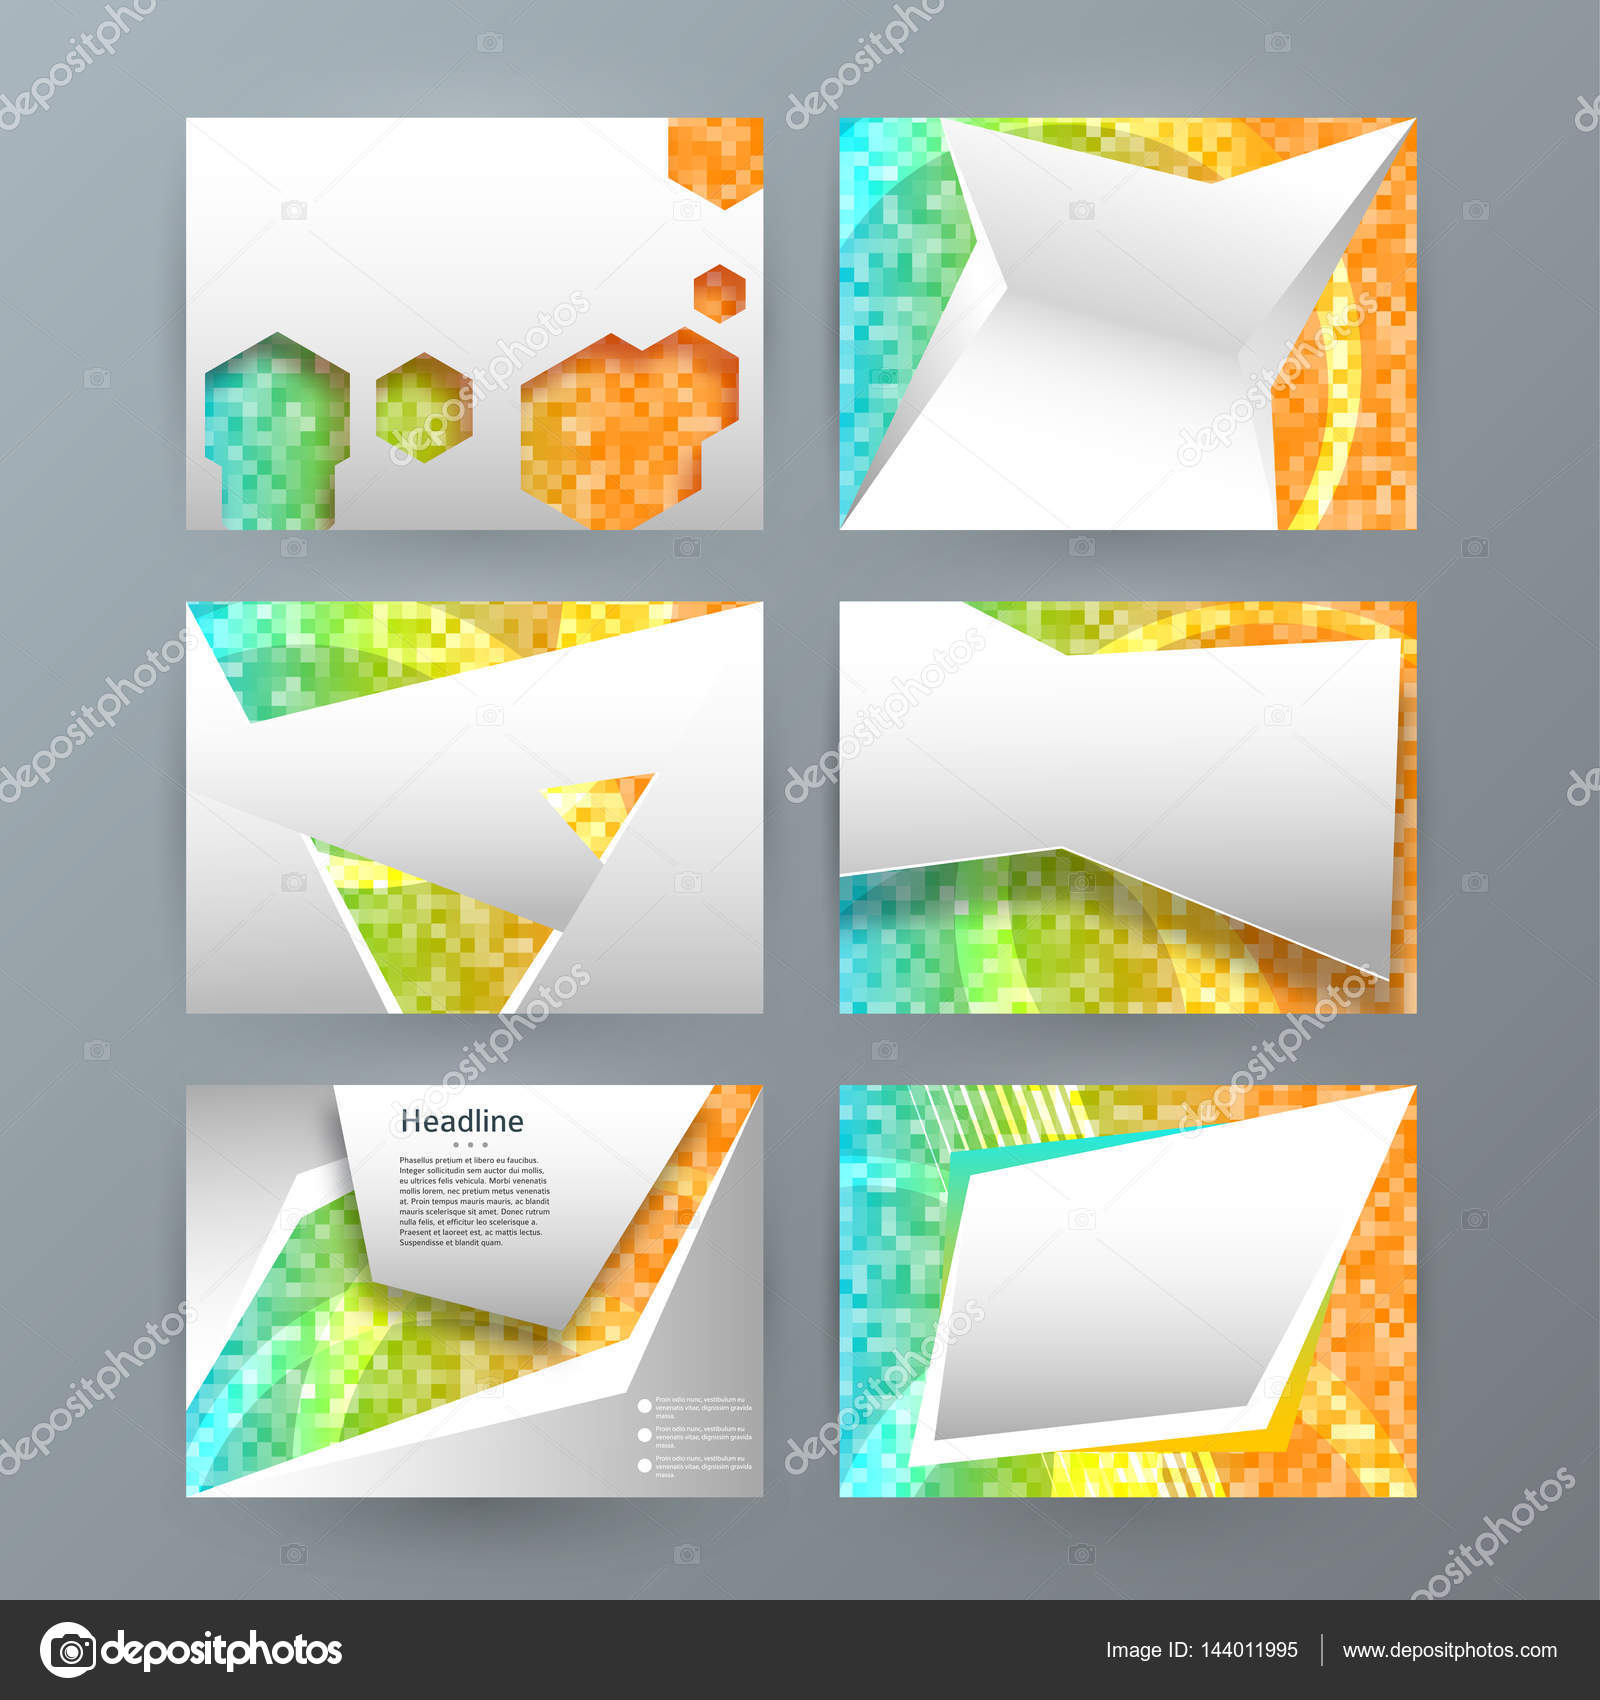 design elements presentation template set horizontal banners background mosaic glow light effect vector illustration eps 10 for brochure template - Powerpoint Brochure Templates